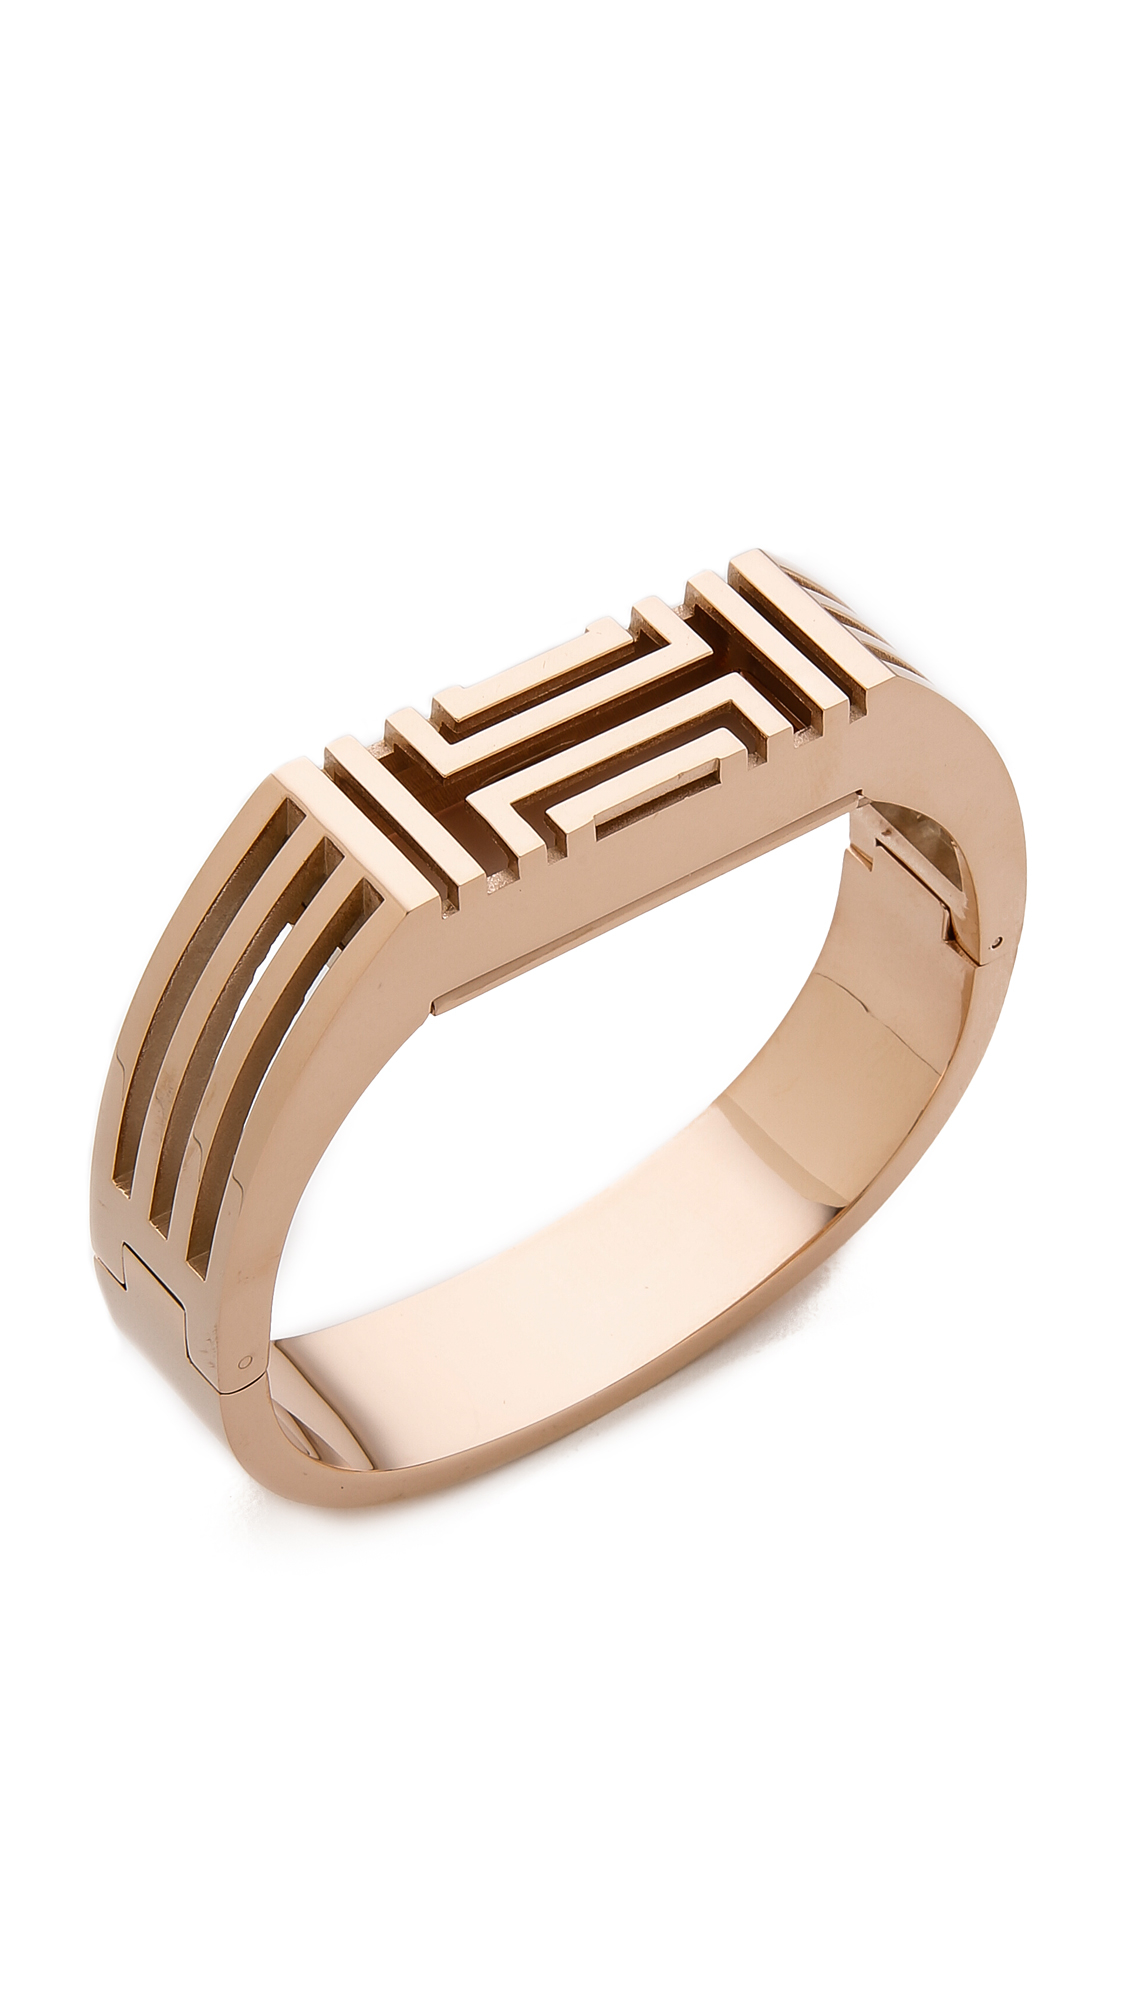 Tory Burch For Fitbit Metal Hinged Bracelet Rose Gold In